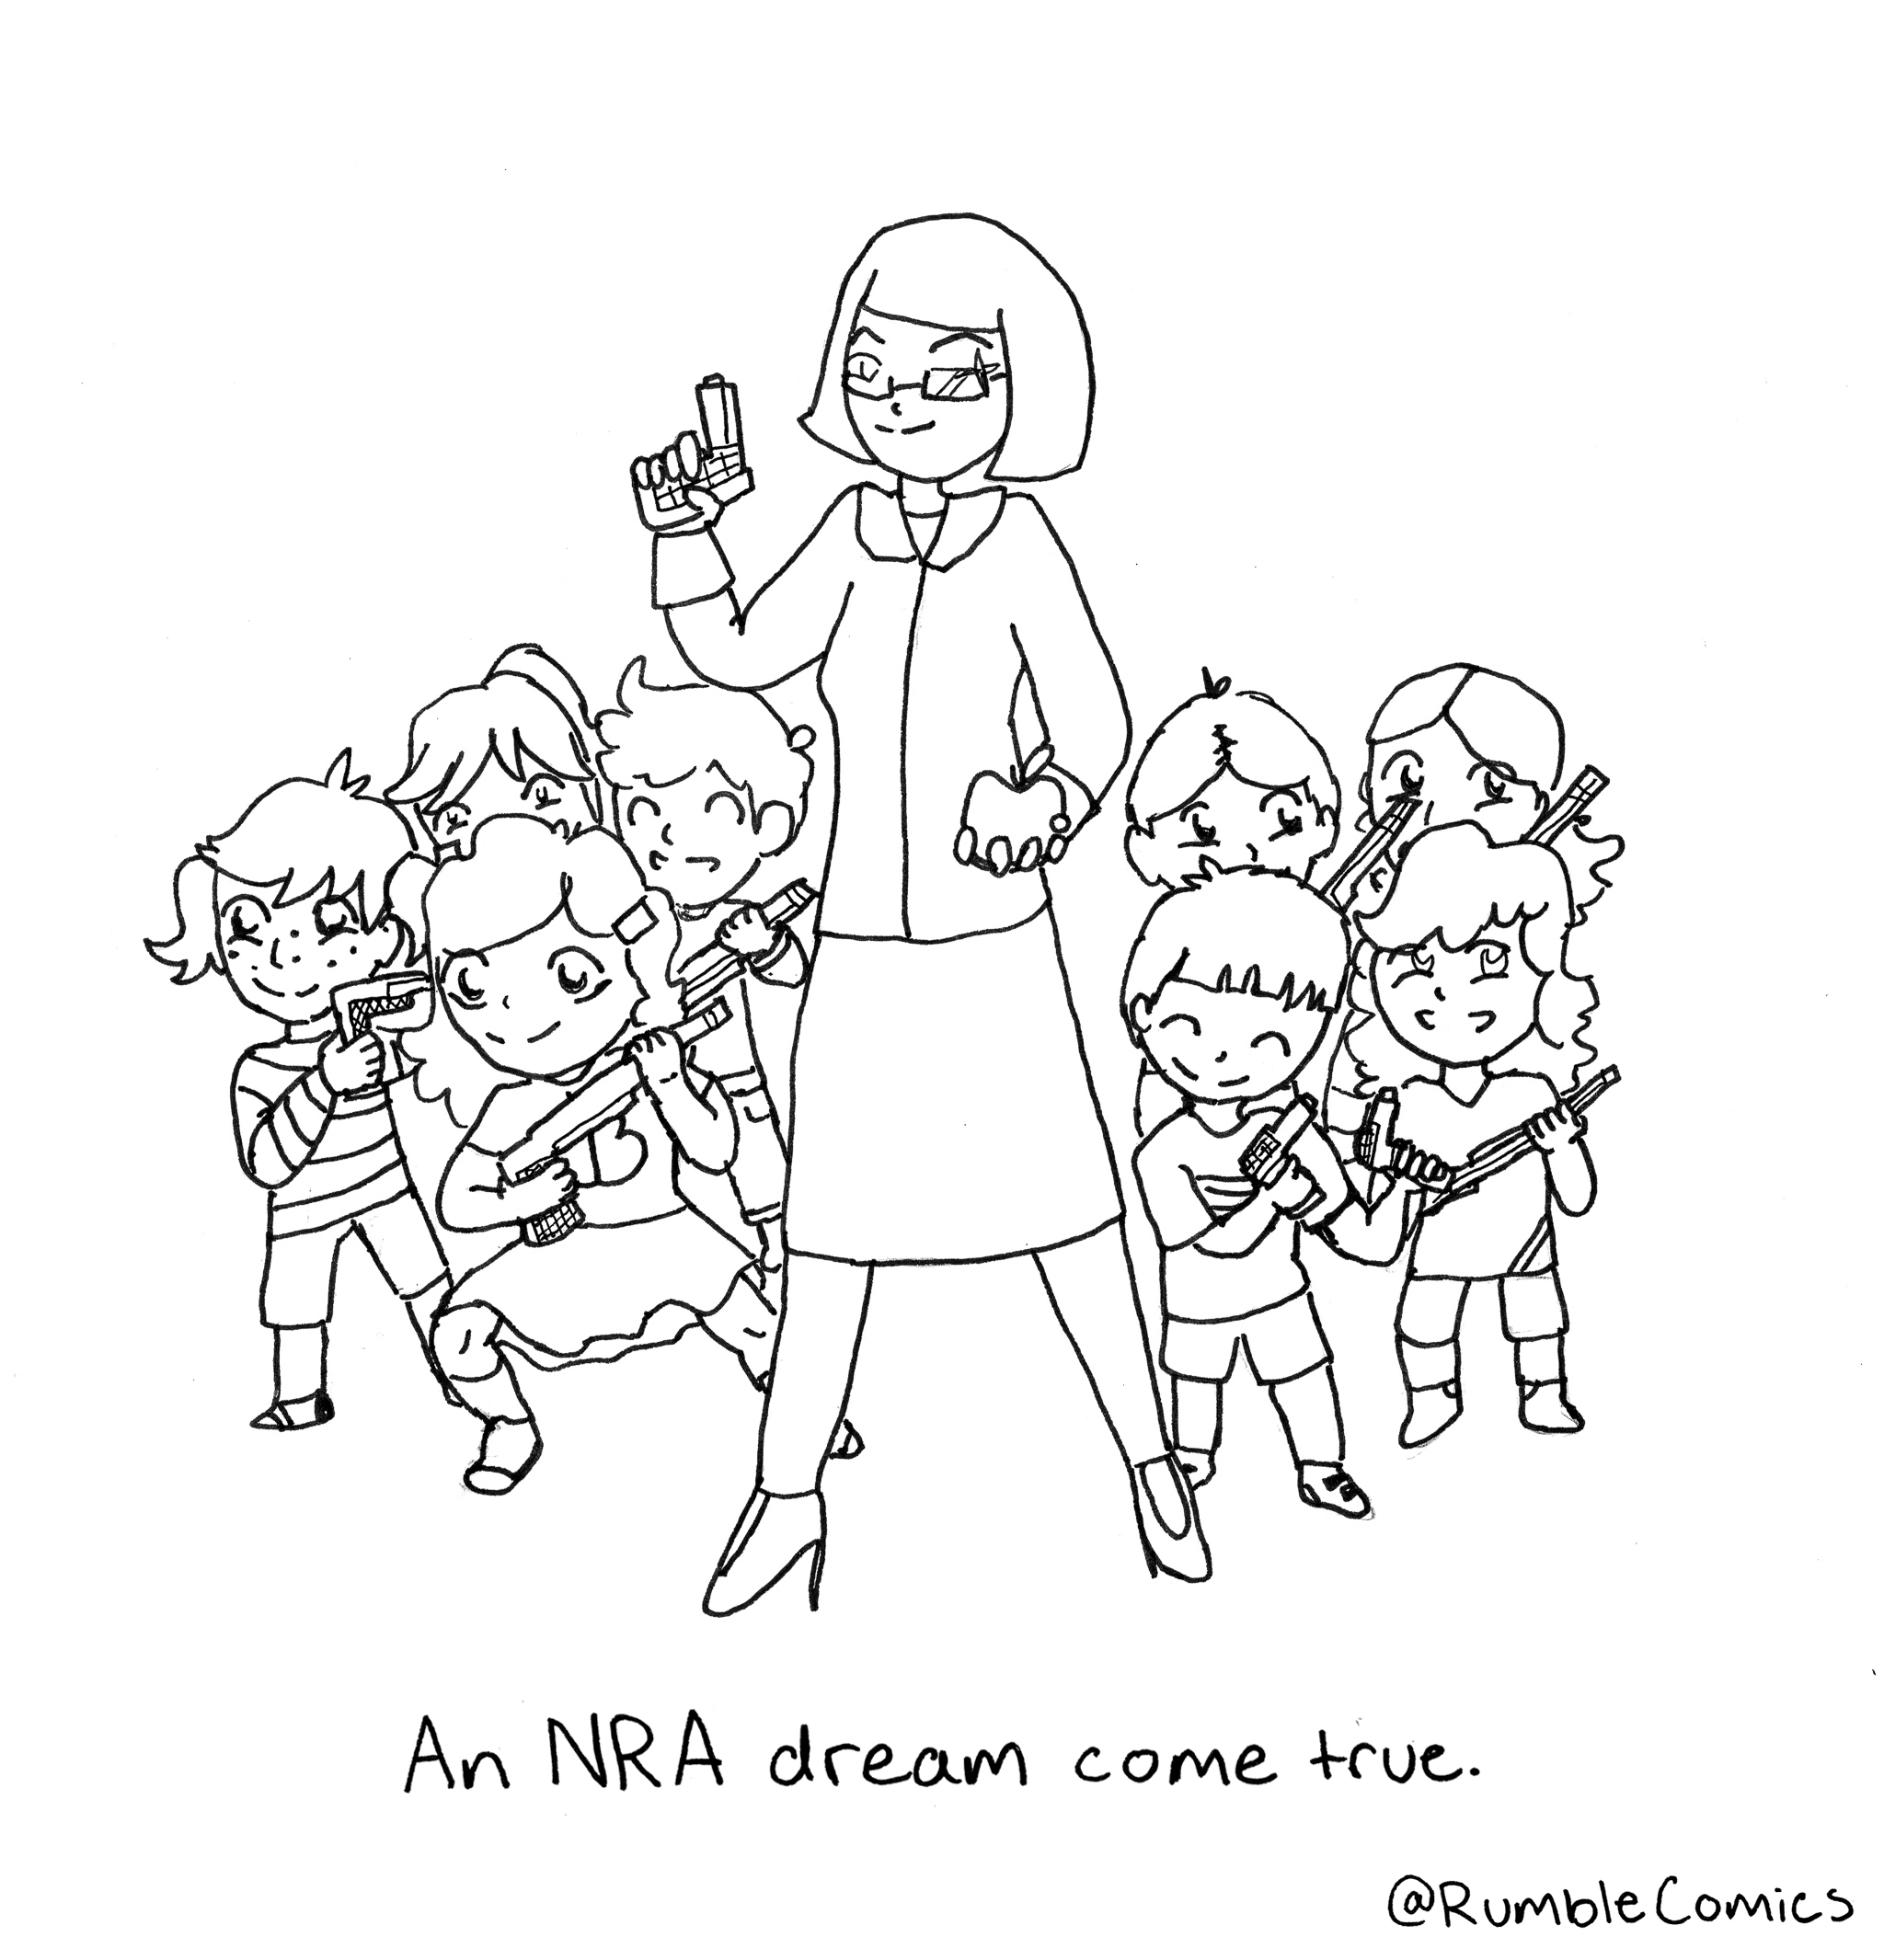 How A 13-Year-Old Cartoonist Responded To The Parkland